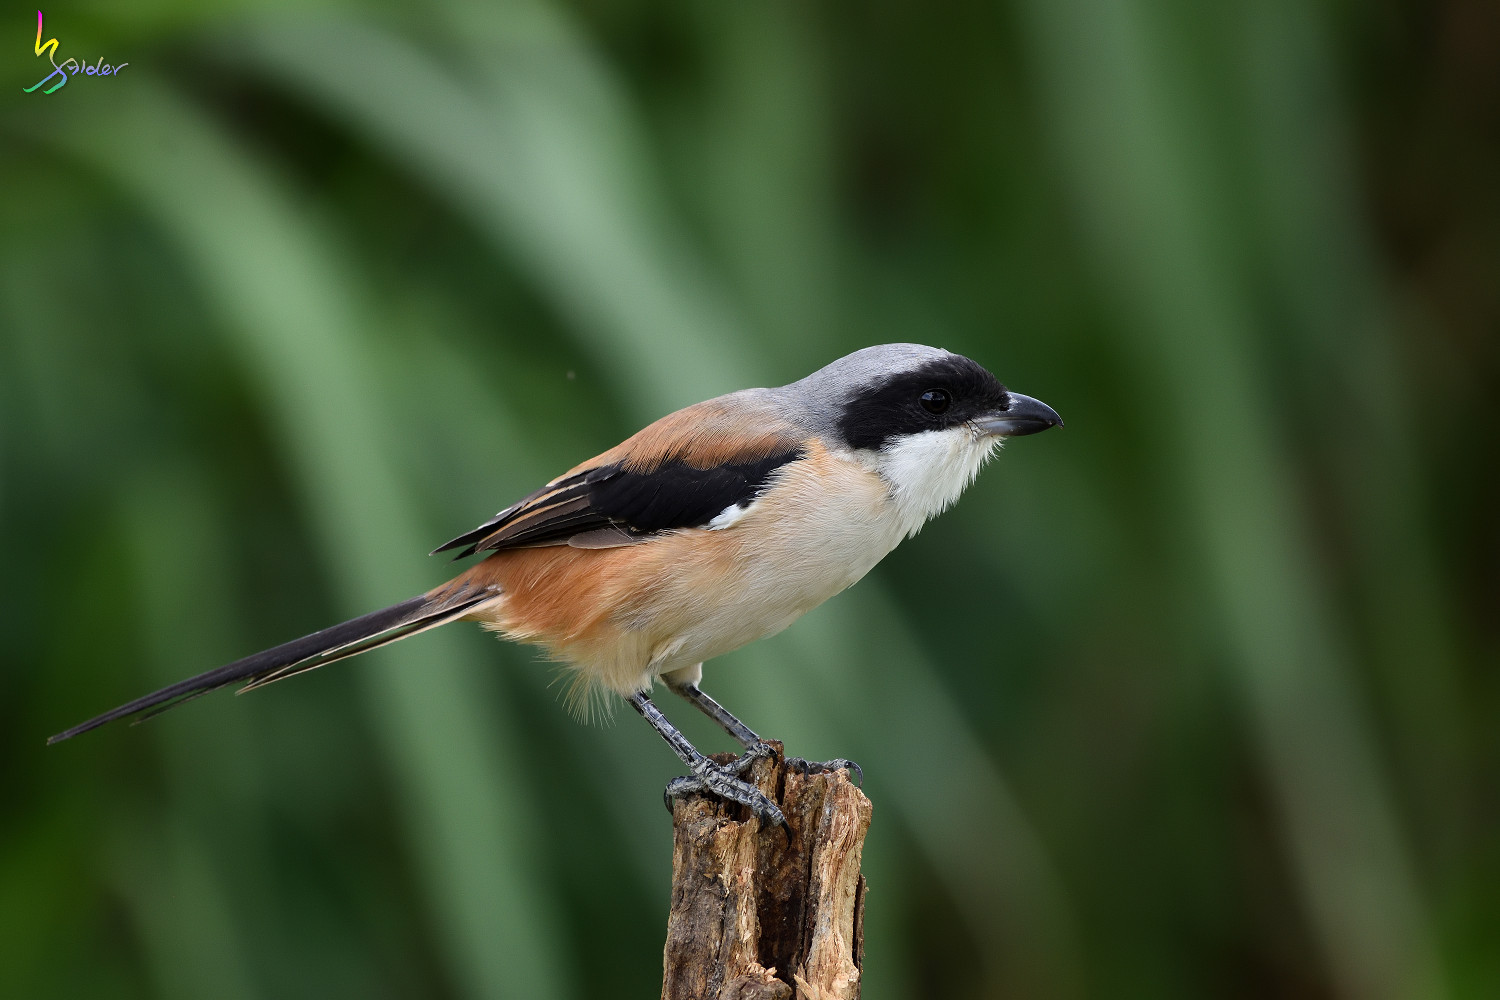 Long-tailed_Shrike_0760